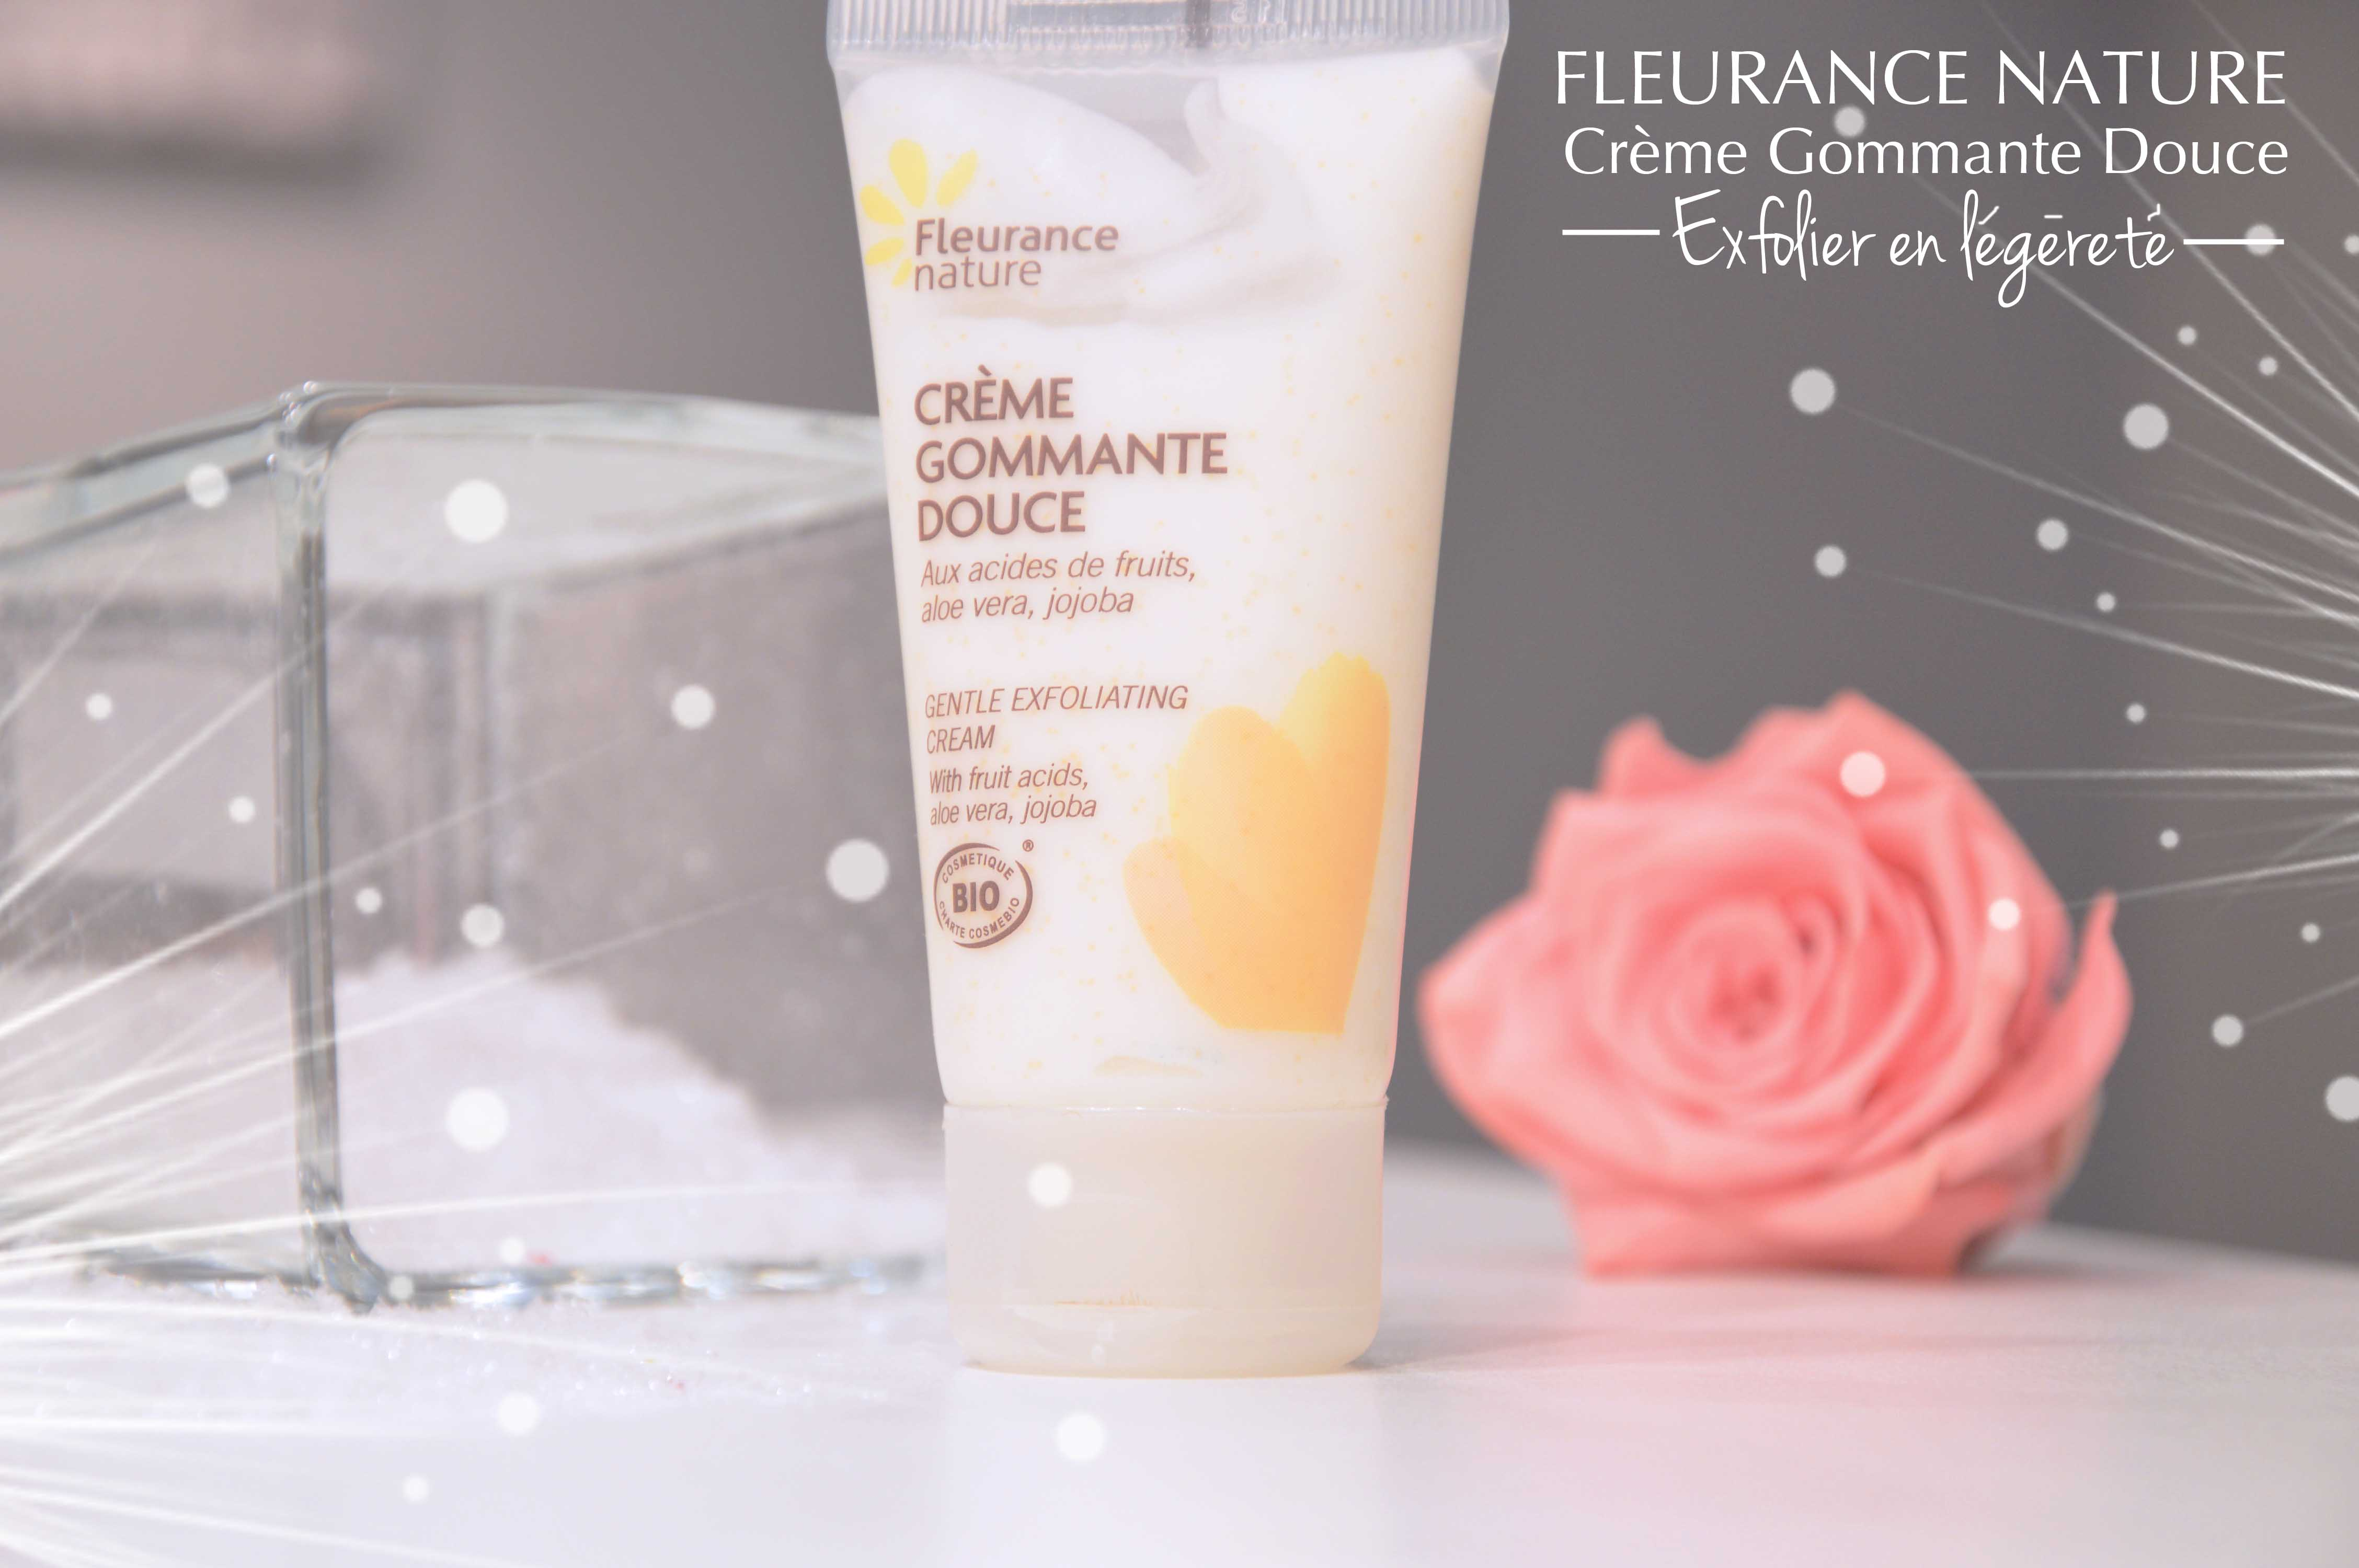 ALITTLEB_BLOG_BEAUTE_SOIN_COCOONING_FLEURANCE_NATURE_CREME_GOMMAGE_DOUCE